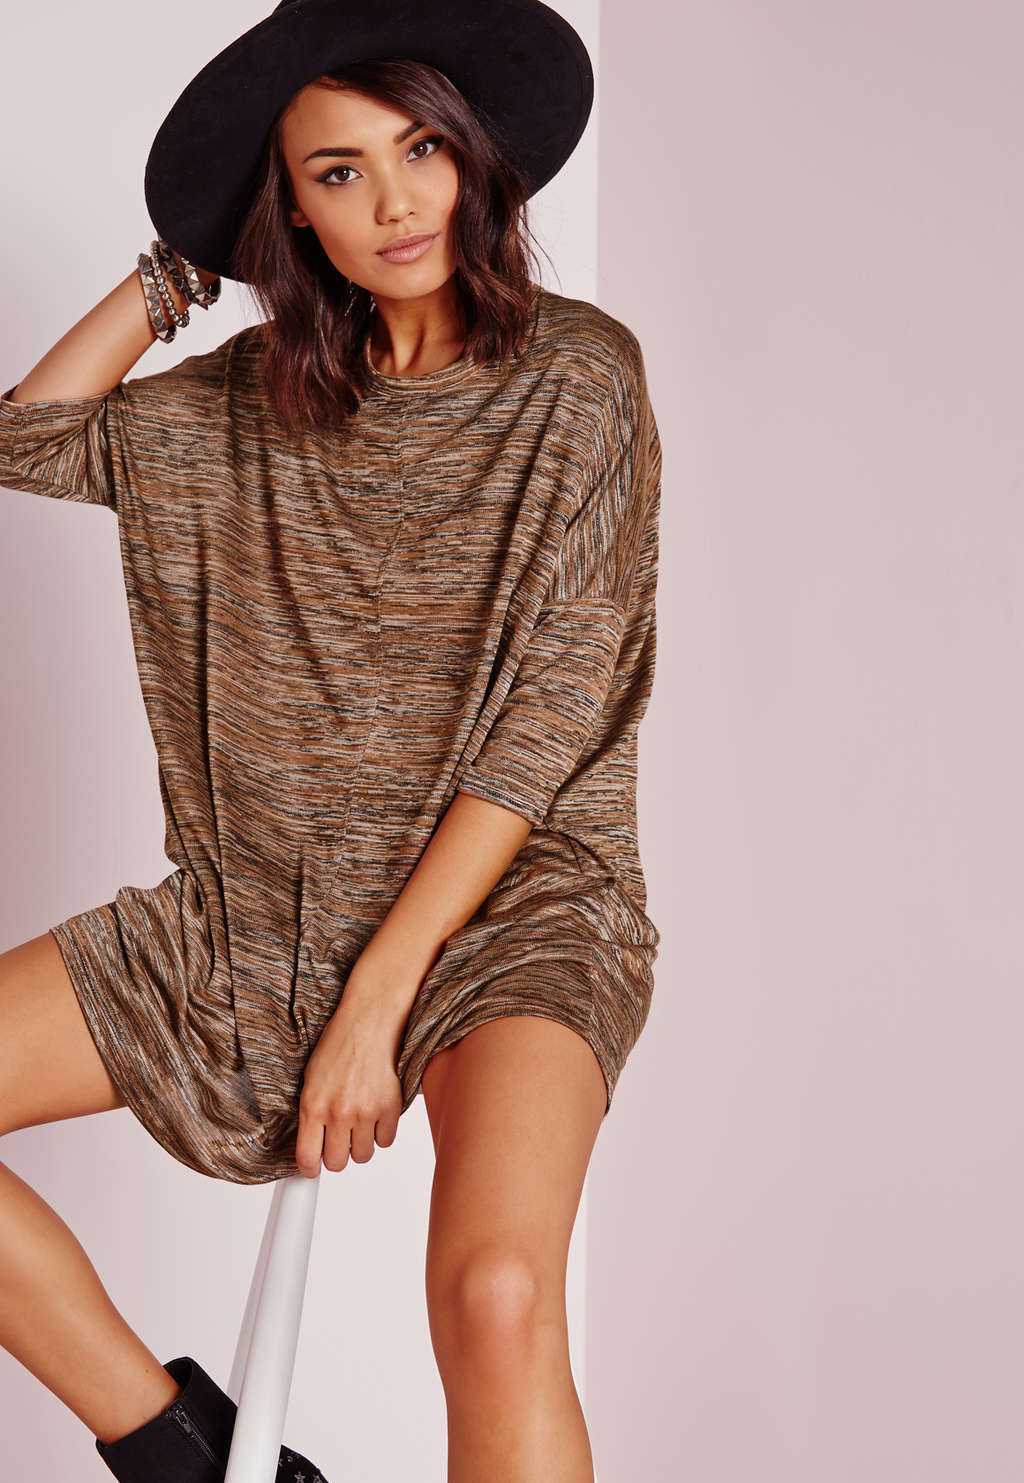 Oversized Slouchy T Shirt Dress Camel Marl, Beige - style: t-shirt; fit: loose; pattern: plain; predominant colour: camel; occasions: casual; length: just above the knee; fibres: polyester/polyamide - stretch; neckline: crew; sleeve length: 3/4 length; sleeve style: standard; pattern type: fabric; texture group: jersey - stretchy/drapey; season: s/s 2016